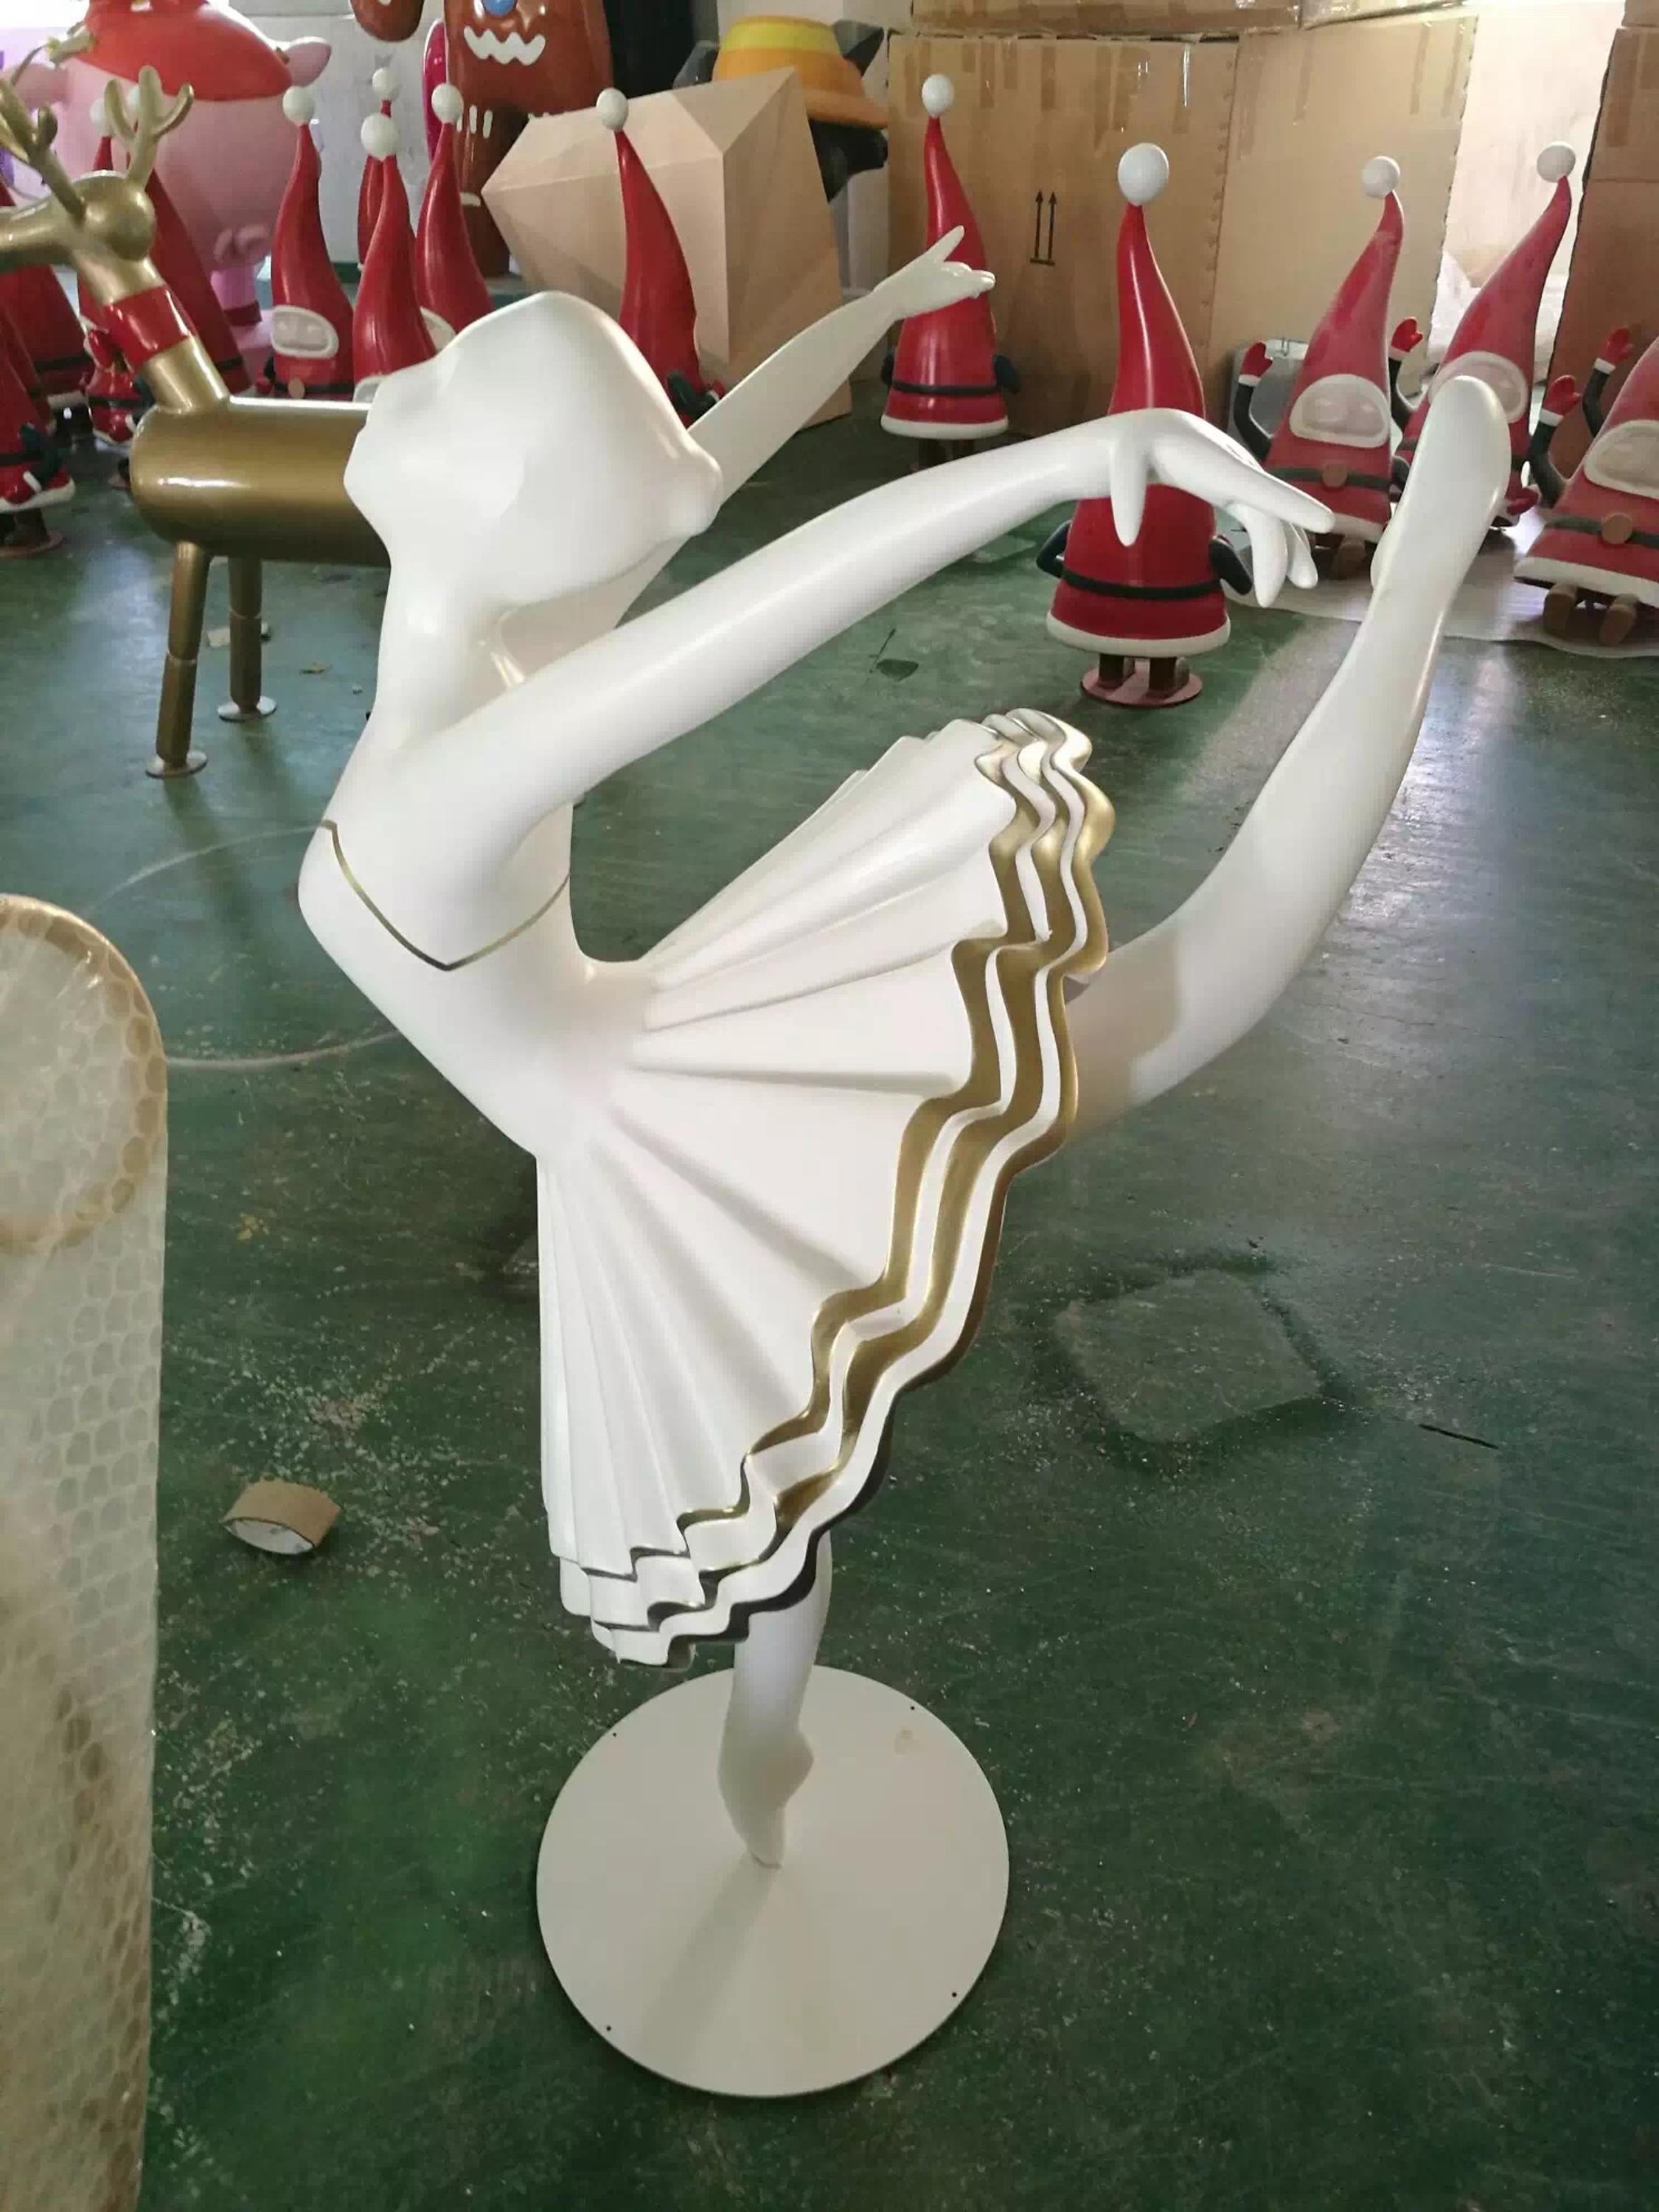 custom rotating dancing ballerina for action figure fiberglass figurine